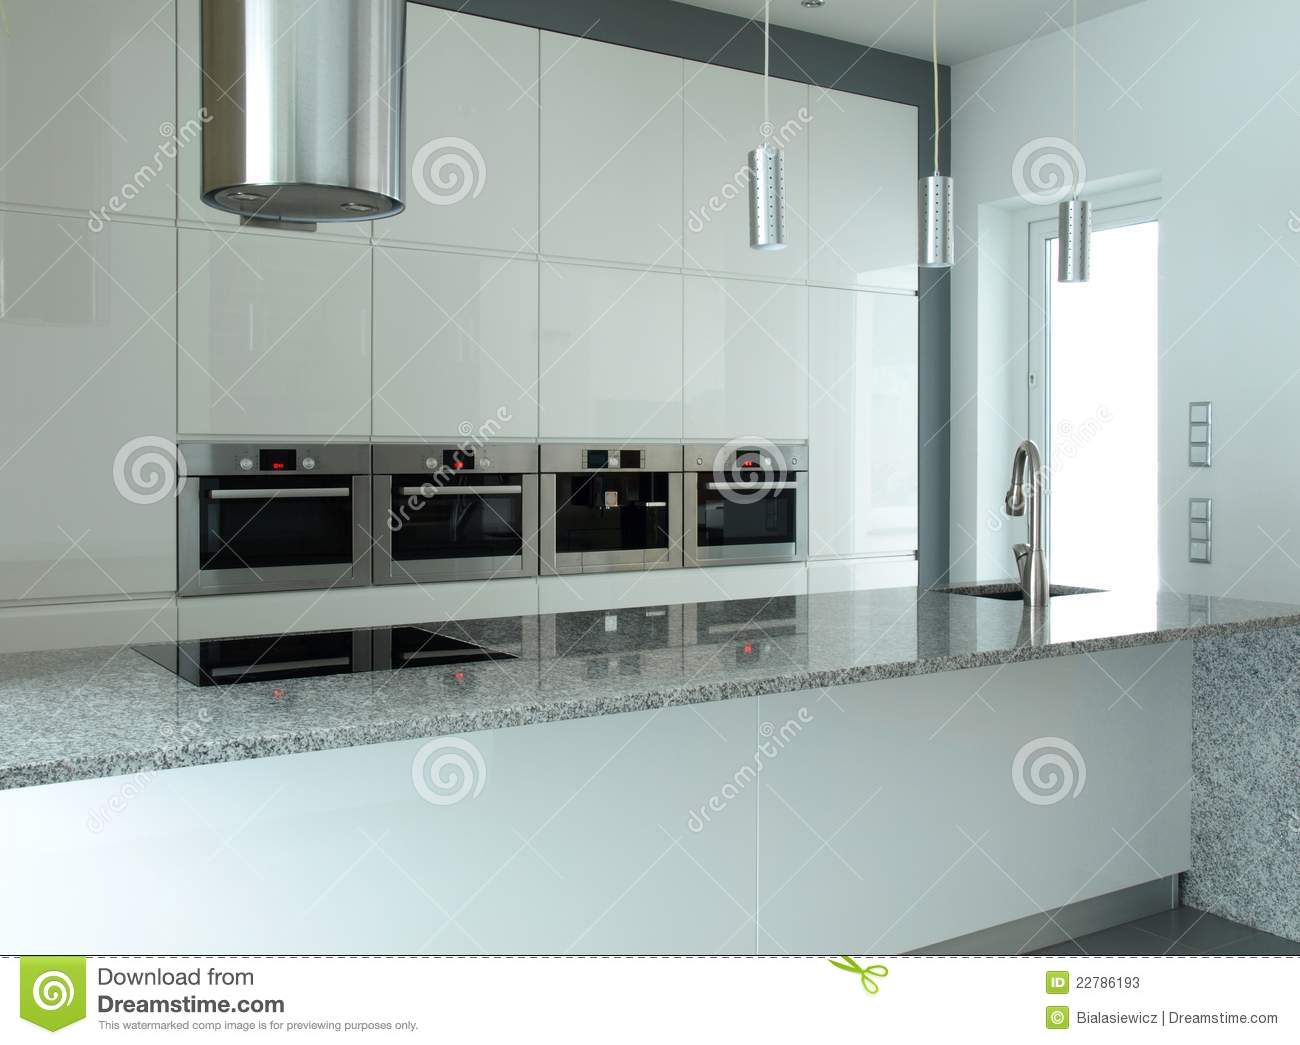 White Kitchen With Built In Appliances Stock Image Image Of Grey Lighting 22786193